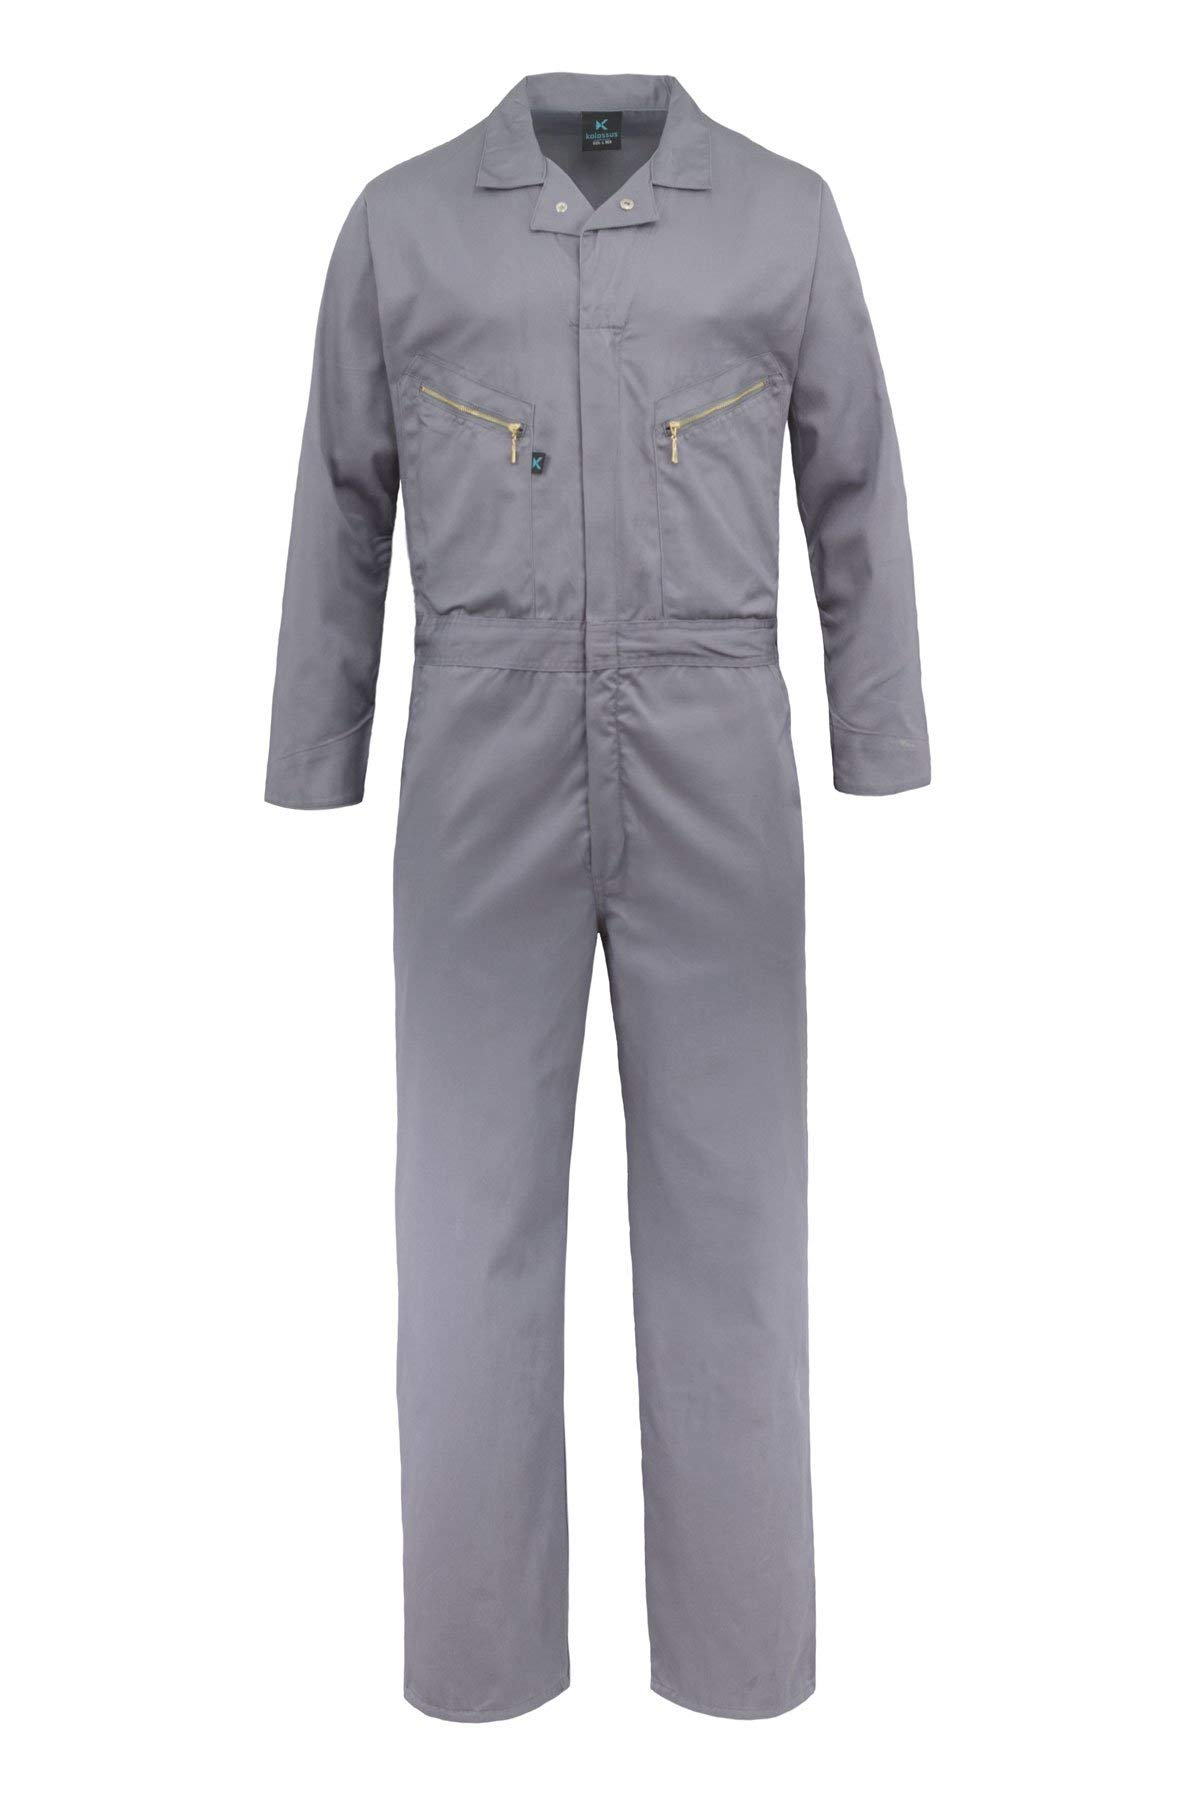 Kolossus Pro-Utility Cotton Blend Long Sleeve Coverall with Zippered Frontal Pockets